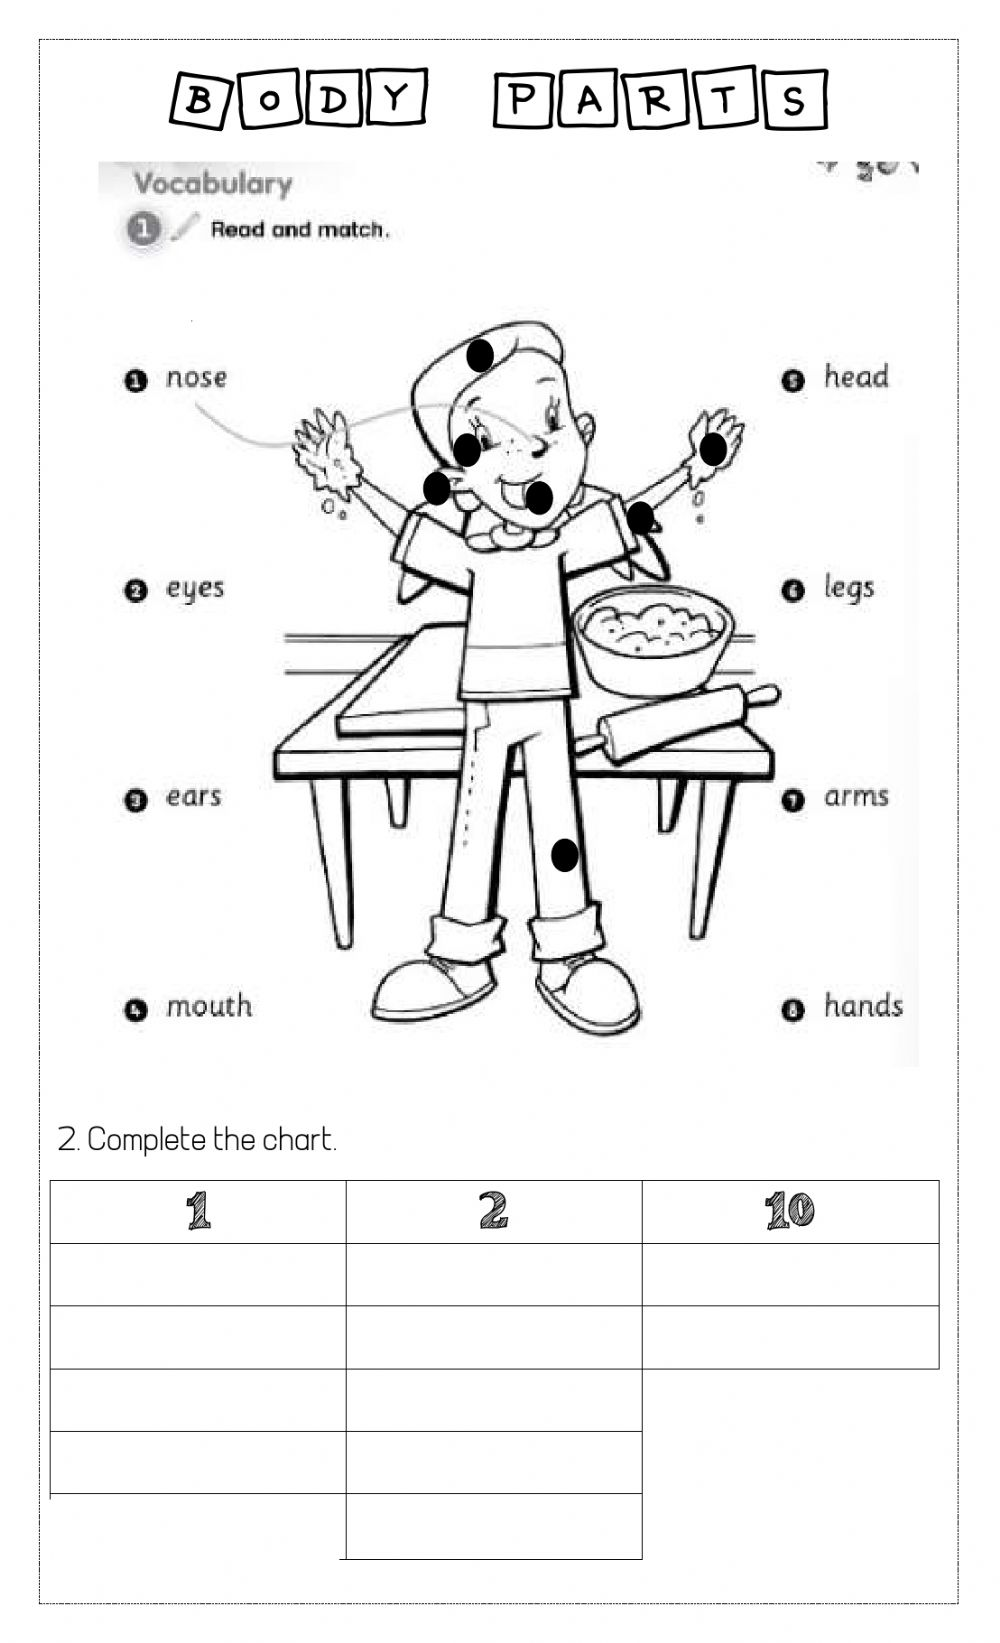 Body parts online exercise for kids